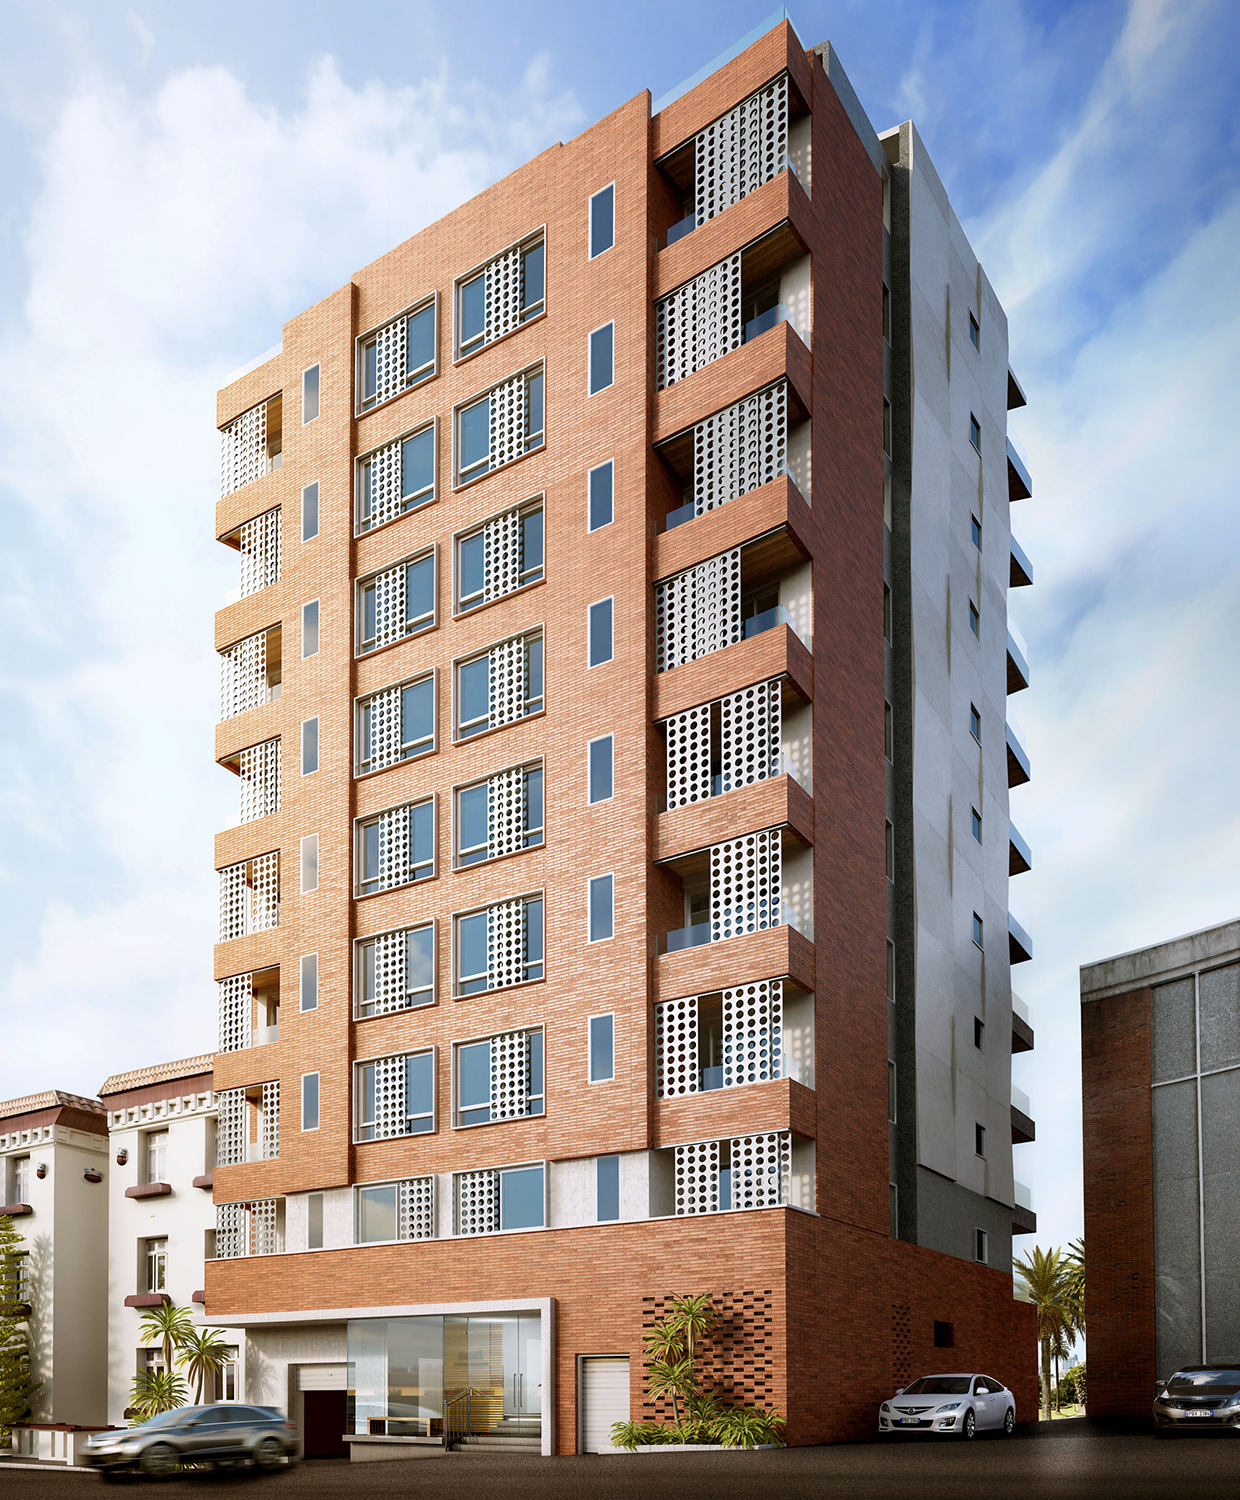 The Oasis Apartments: New Apartments For Sale In Auckland Oasis